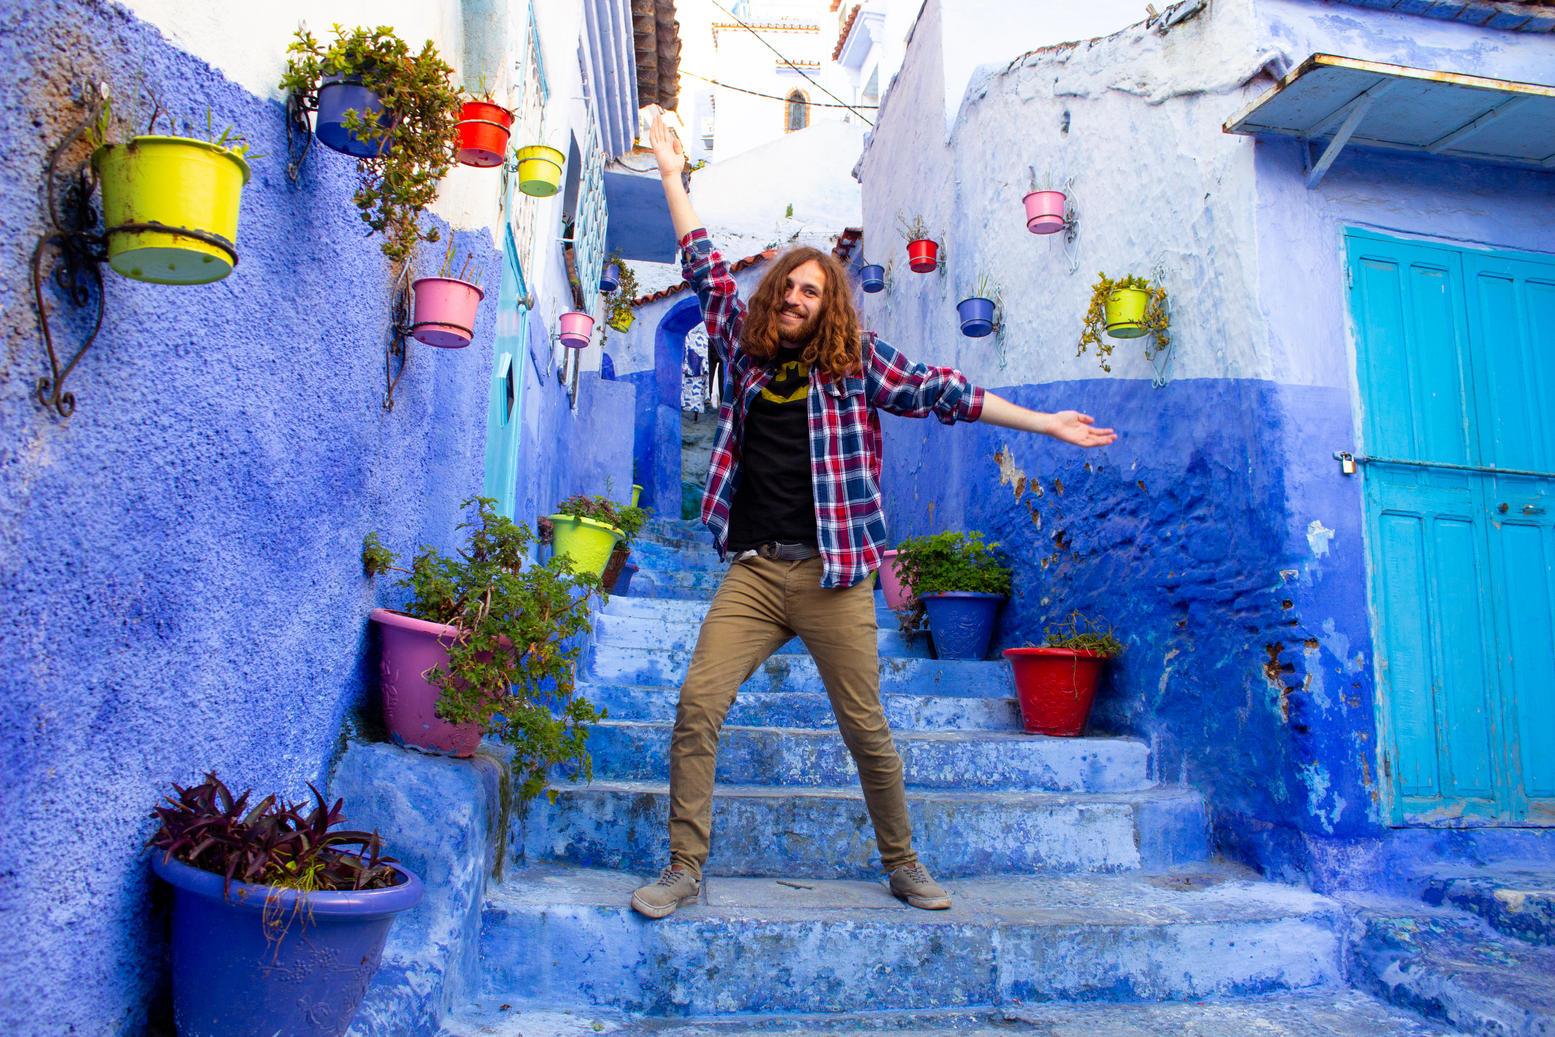 Student in Chefchaouen, Morocco on colorful steps